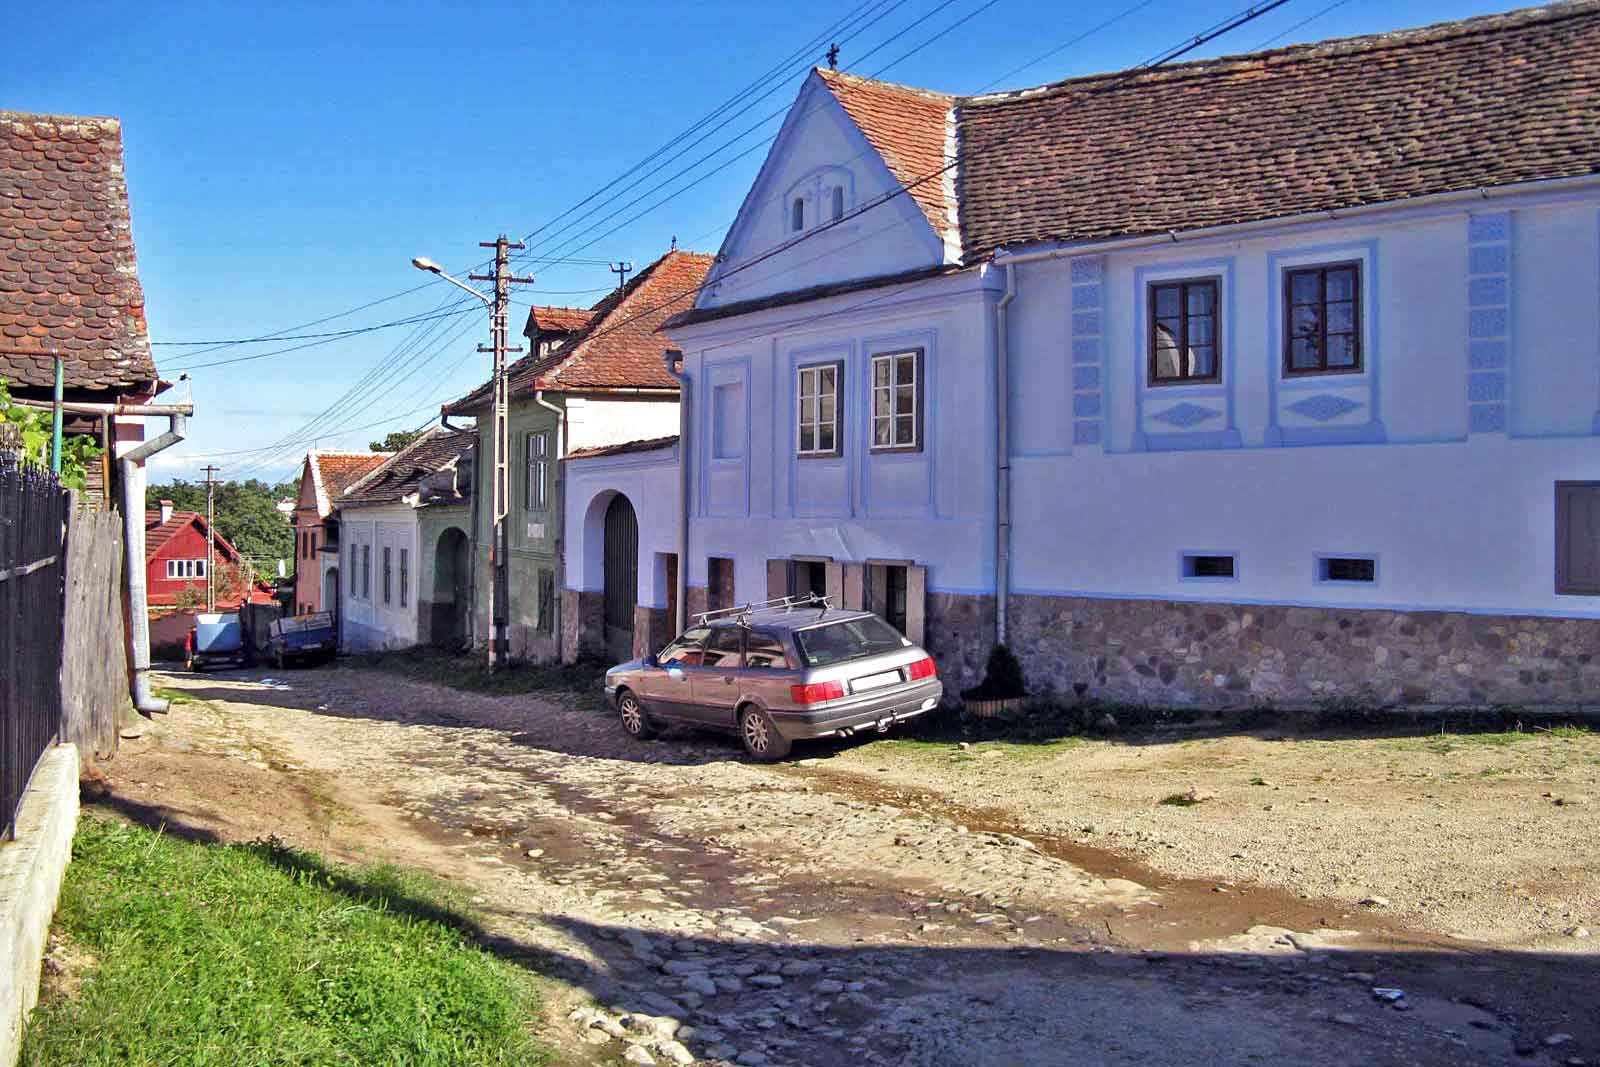 romania self catering holiday cottages to rent for 2-3 people